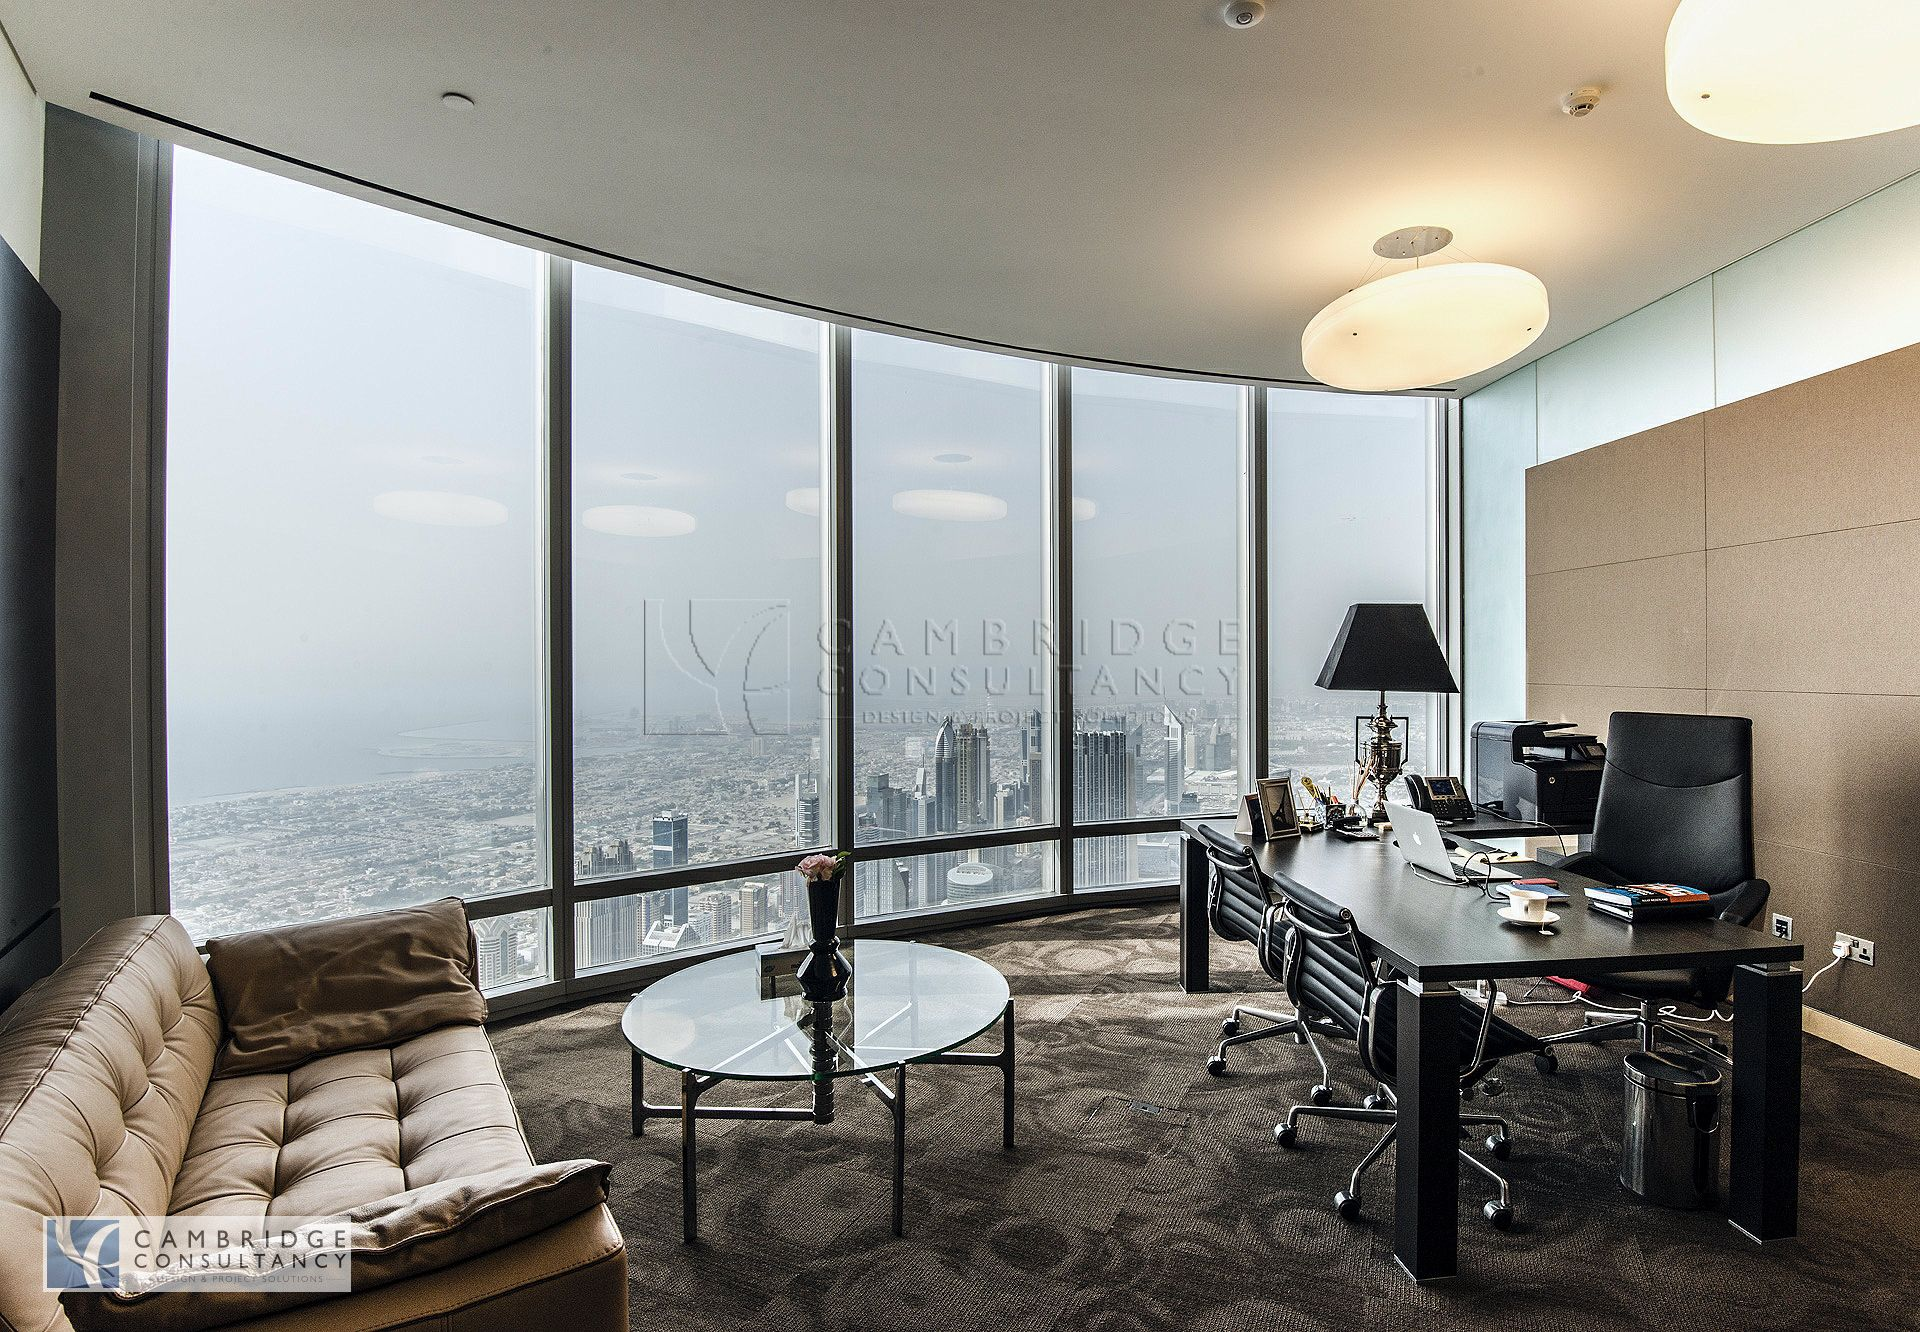 Honest re office inside burj khalifa full floor designed for Luxury design consultancy